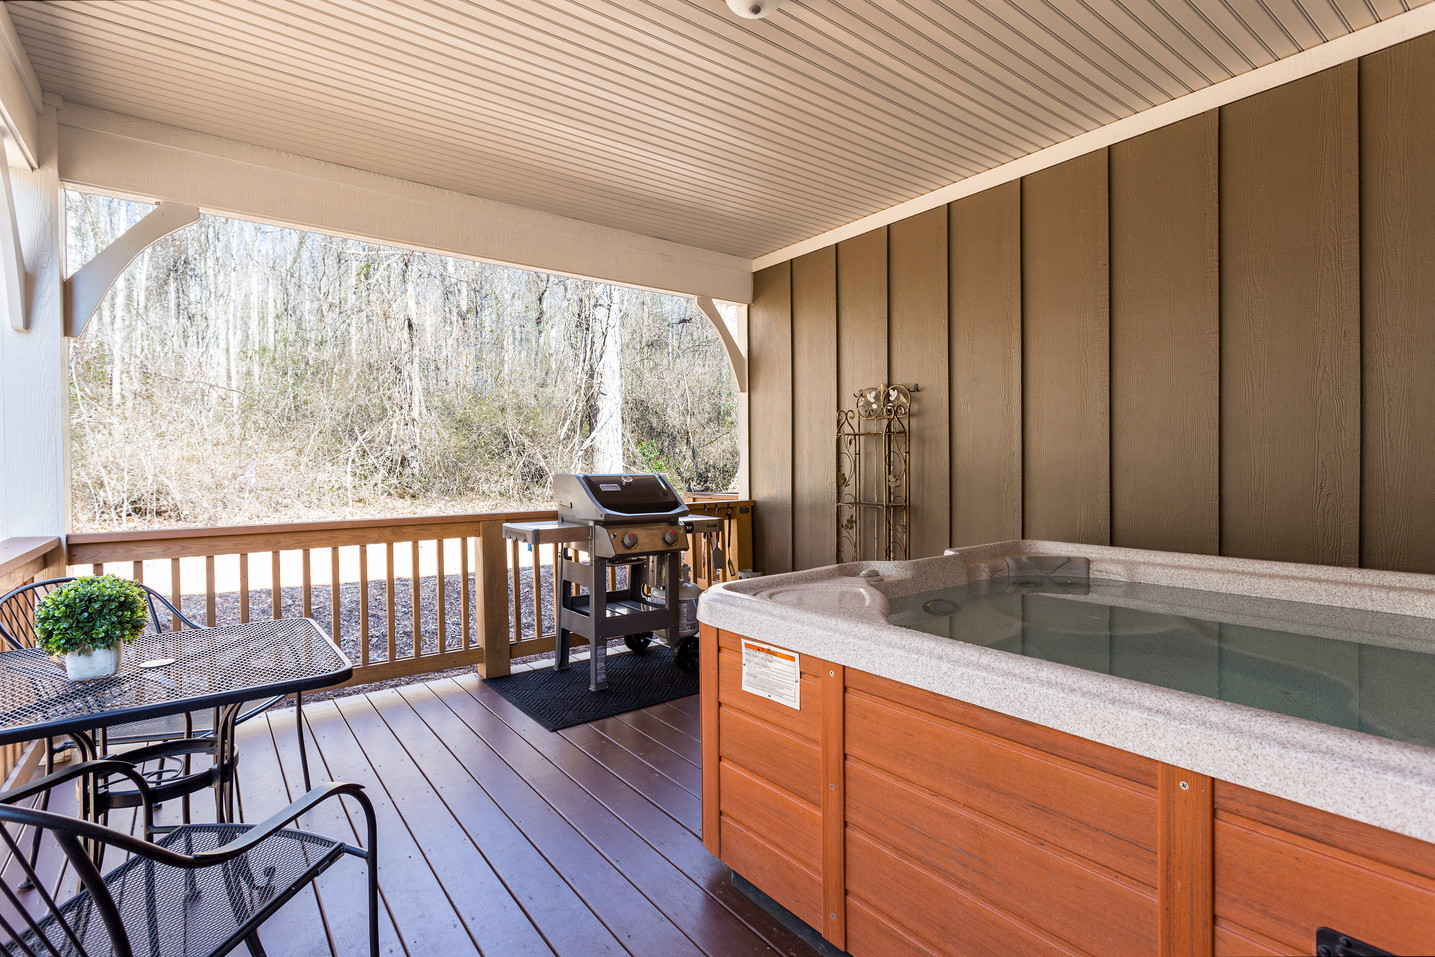 Hot tub and bistro table on the back deck